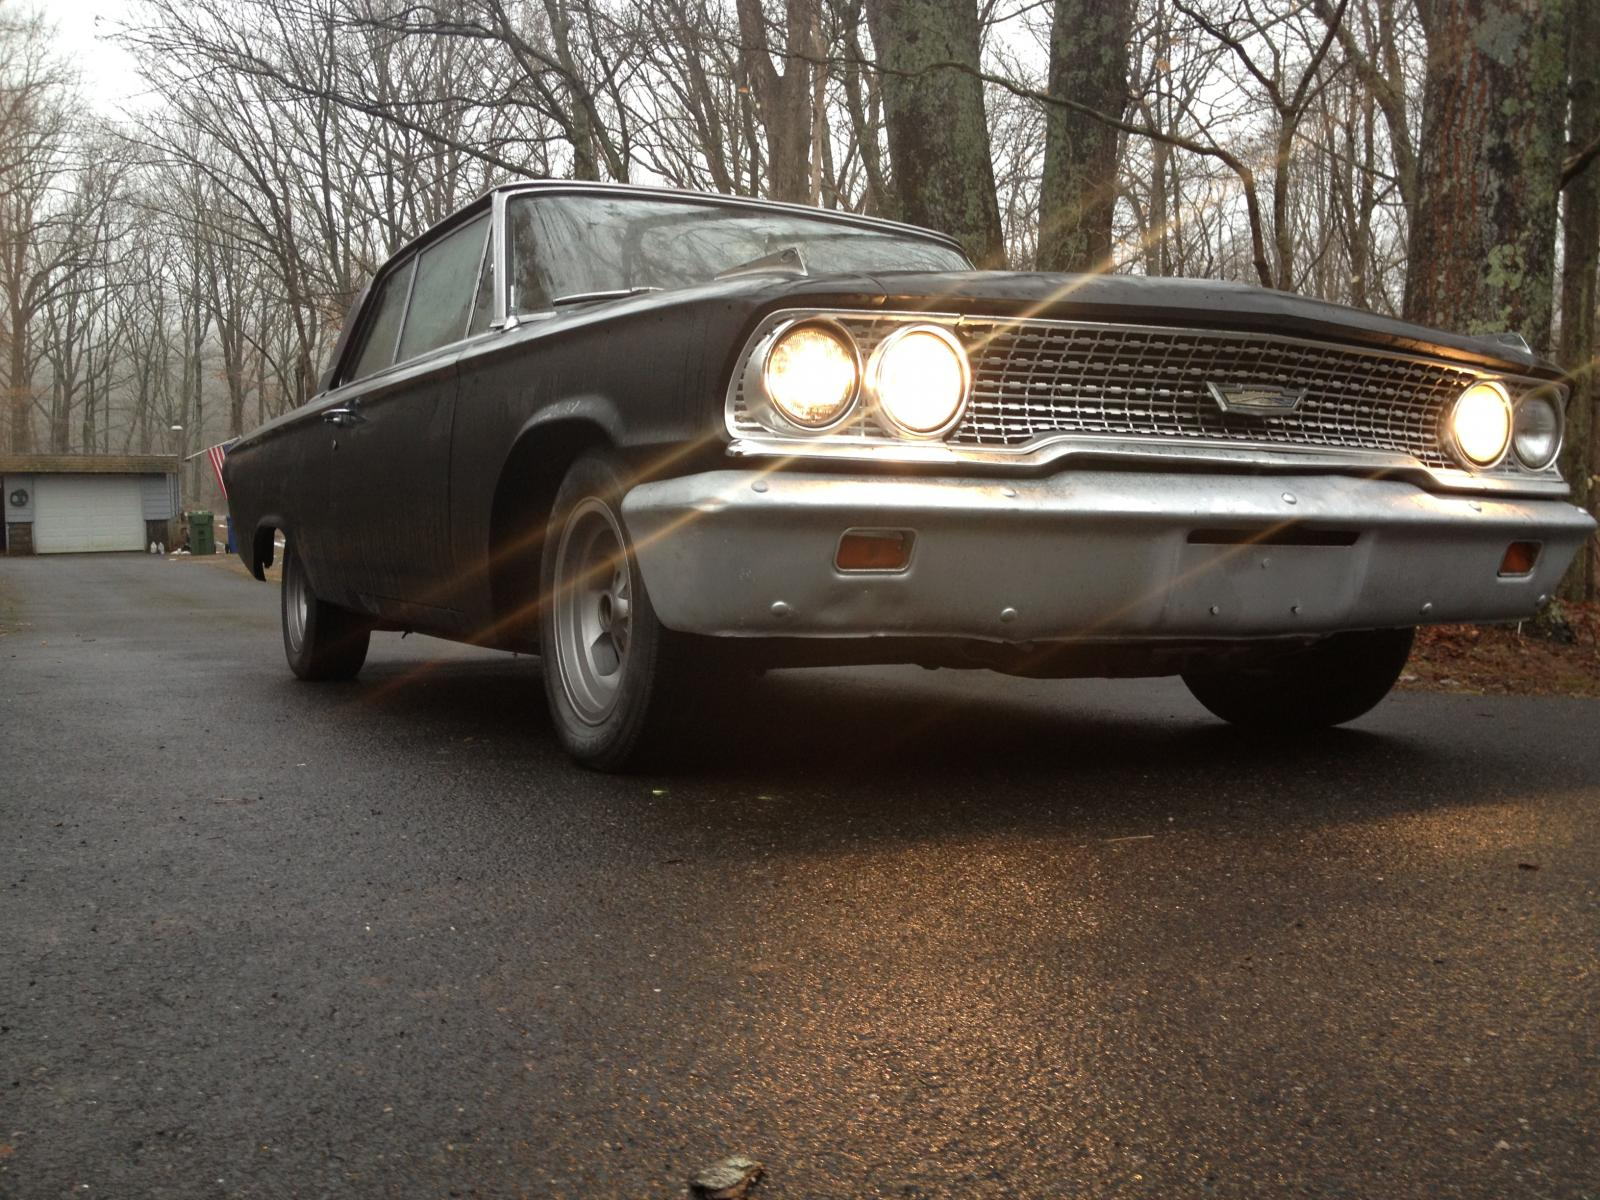 Major restoration help needed, 1963 Ford Galaxie.-img_1338-1-.jpg